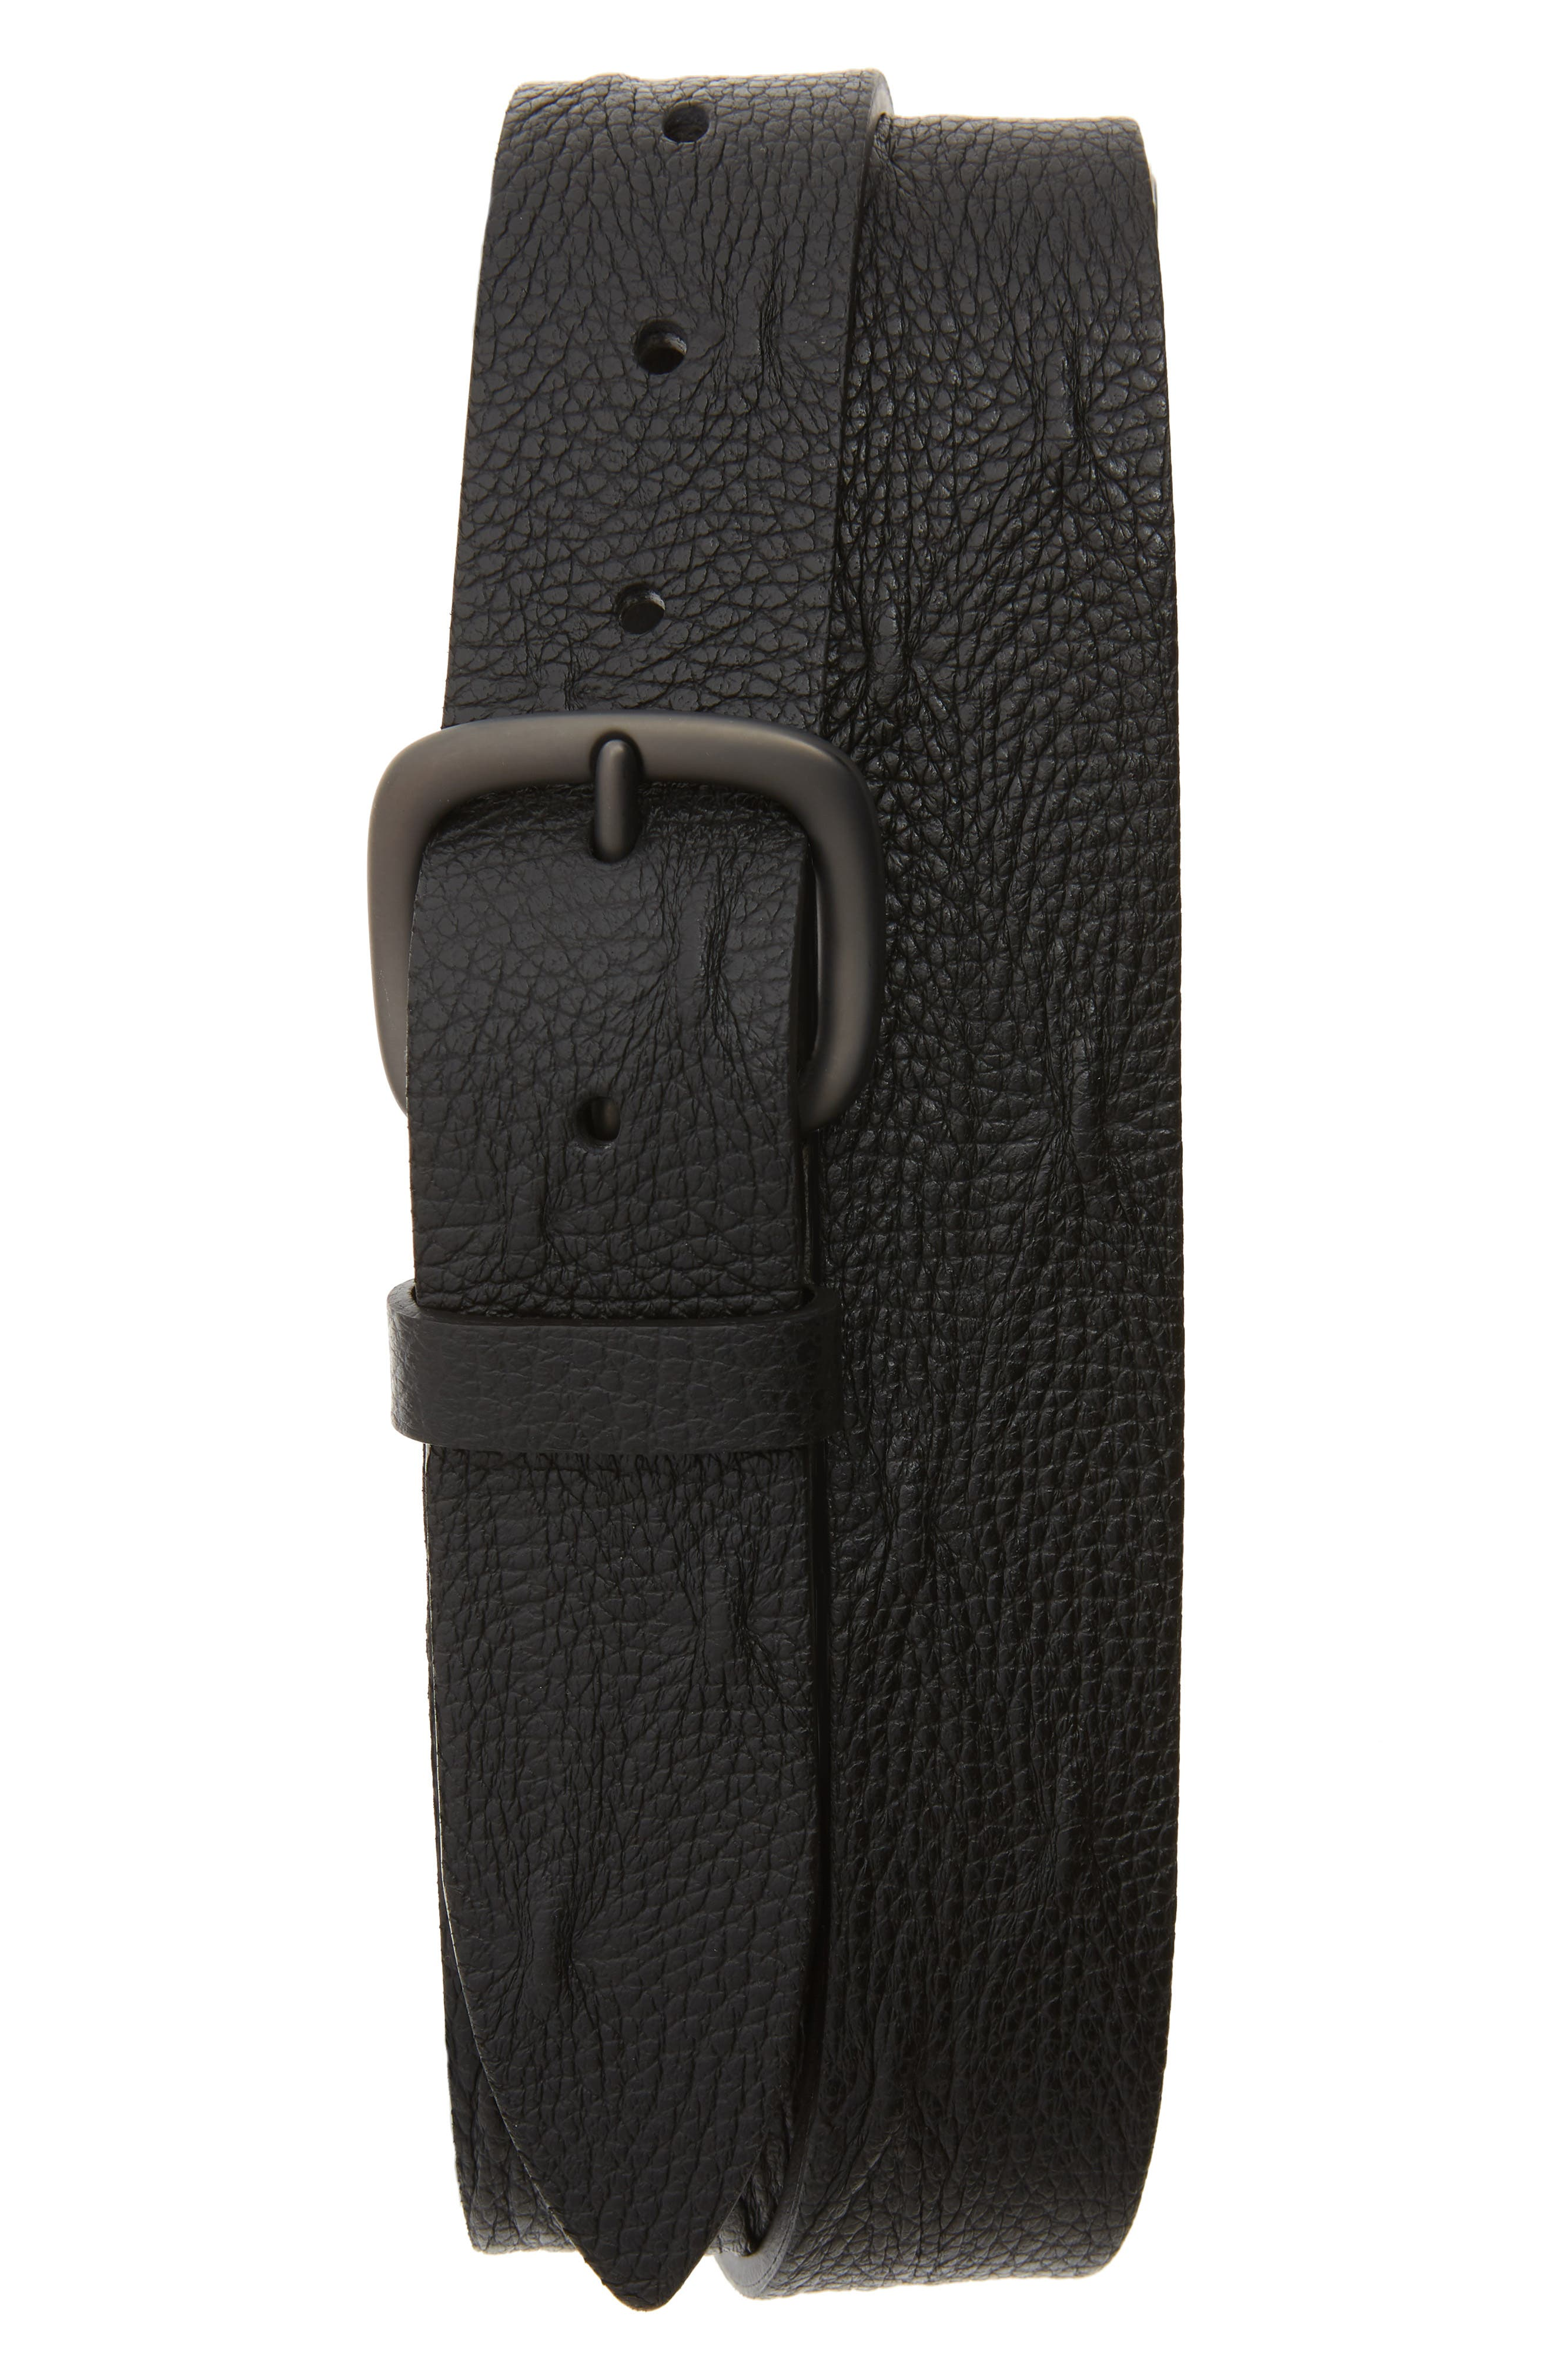 ORCIANI Micron Pebbled Leather Belt, Main, color, 001